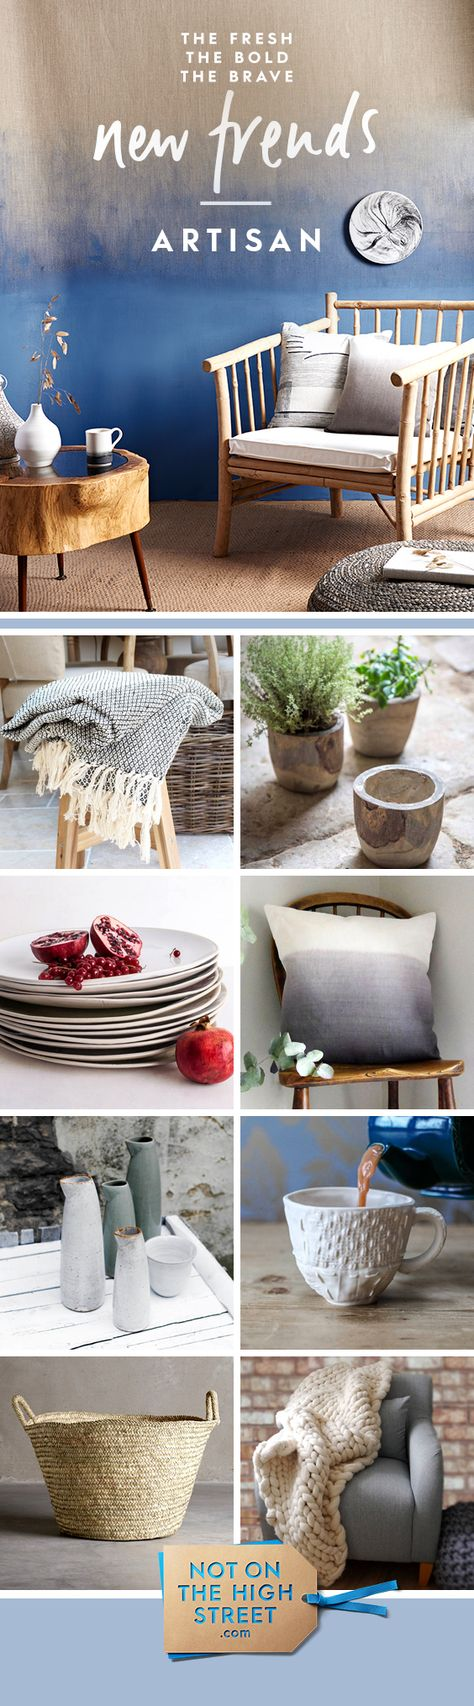 Craft is at the heart of the artisan trend, which brings together objects made by hand from rustic materials such as wood, rope and clay.